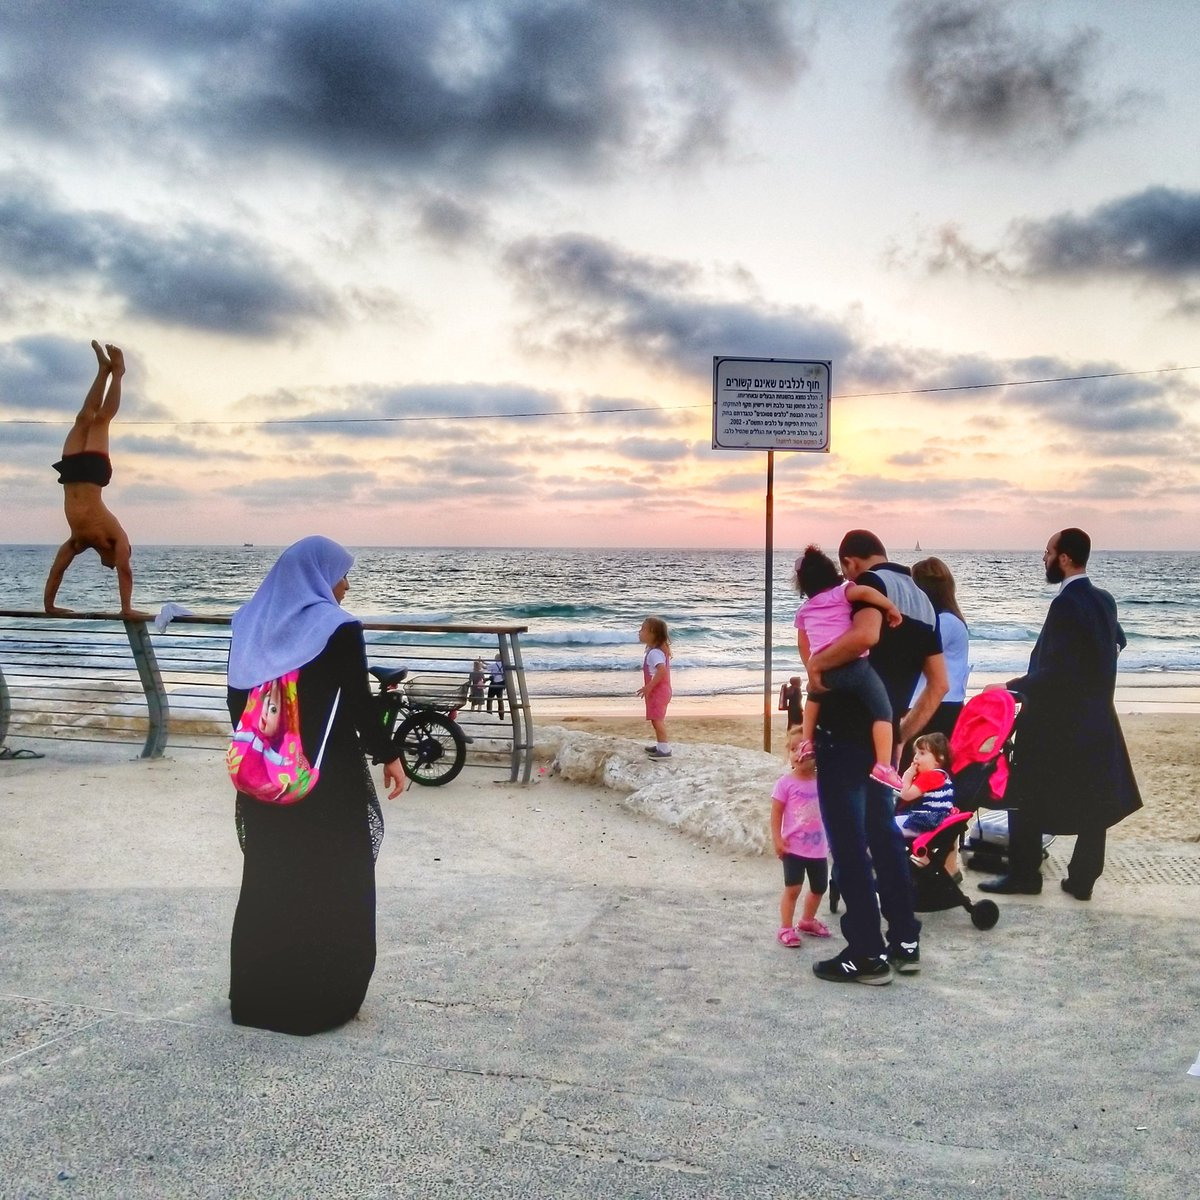 Only in #Israel Orthodox Jews along with Arabs watch half-naked man doing handstand during Tel Aviv sunset <br>http://pic.twitter.com/hY1lqrzyHs